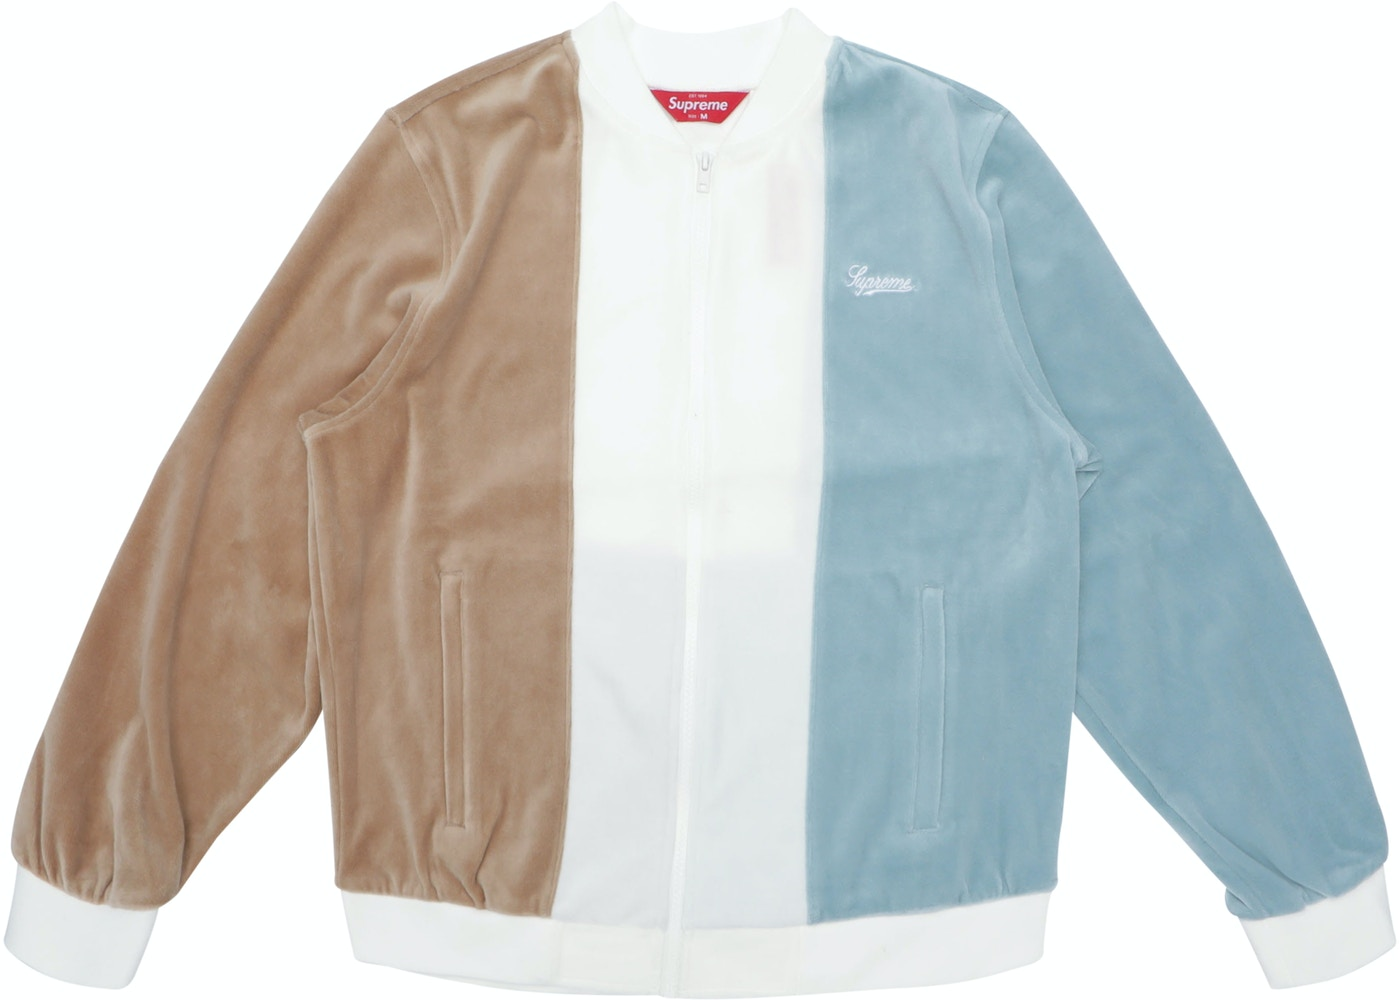 Streetwear - Supreme Jackets - New Highest Bids fd7f54bc8